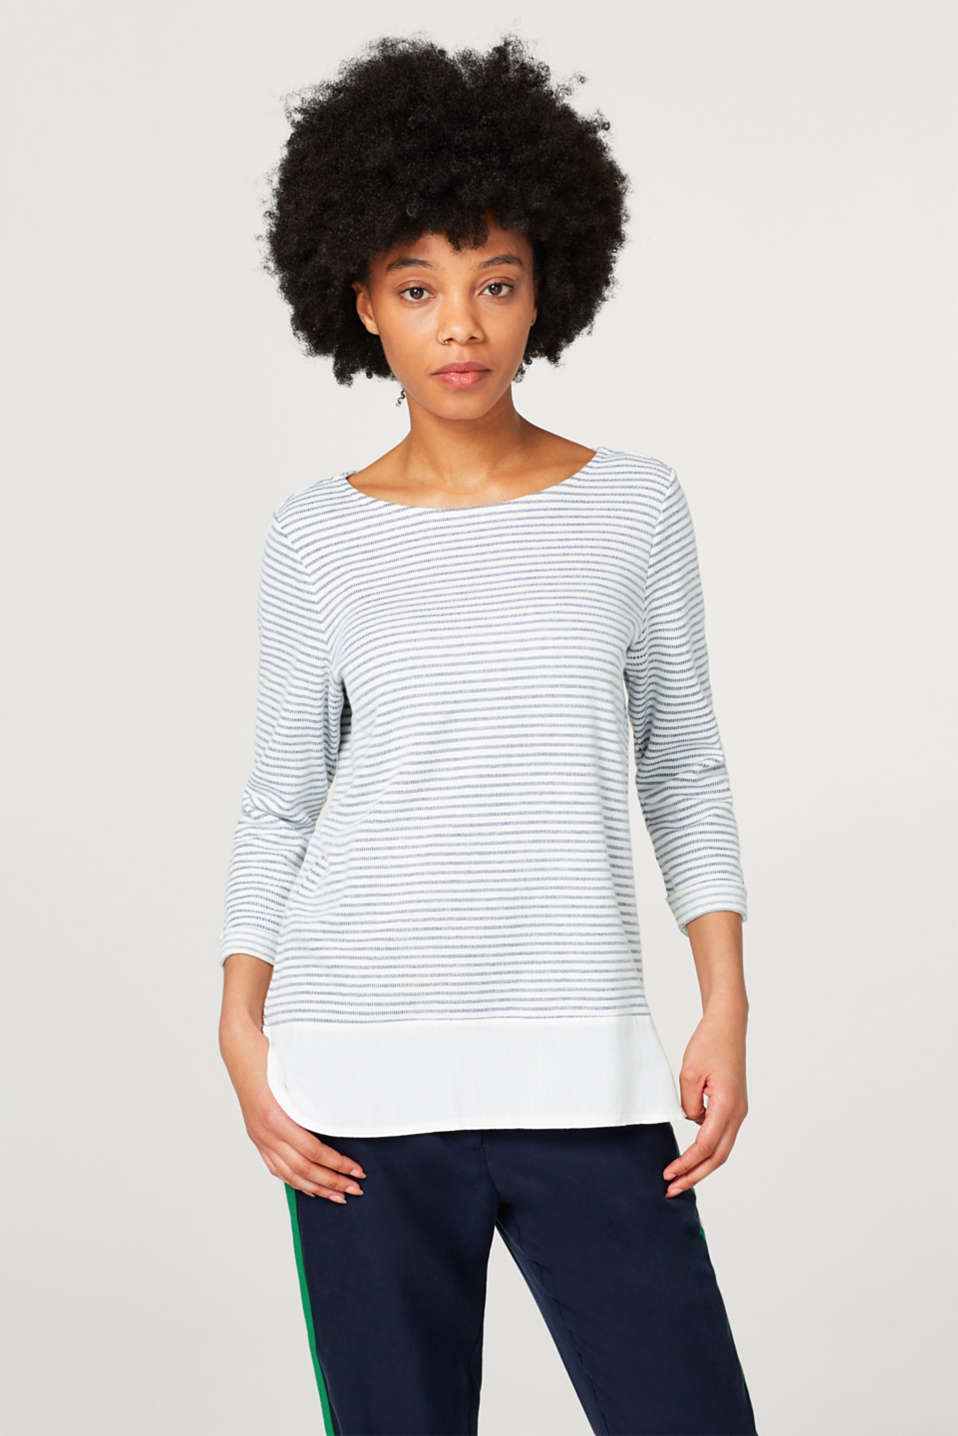 Esprit - Light, textured sweatshirt with a cloth hem